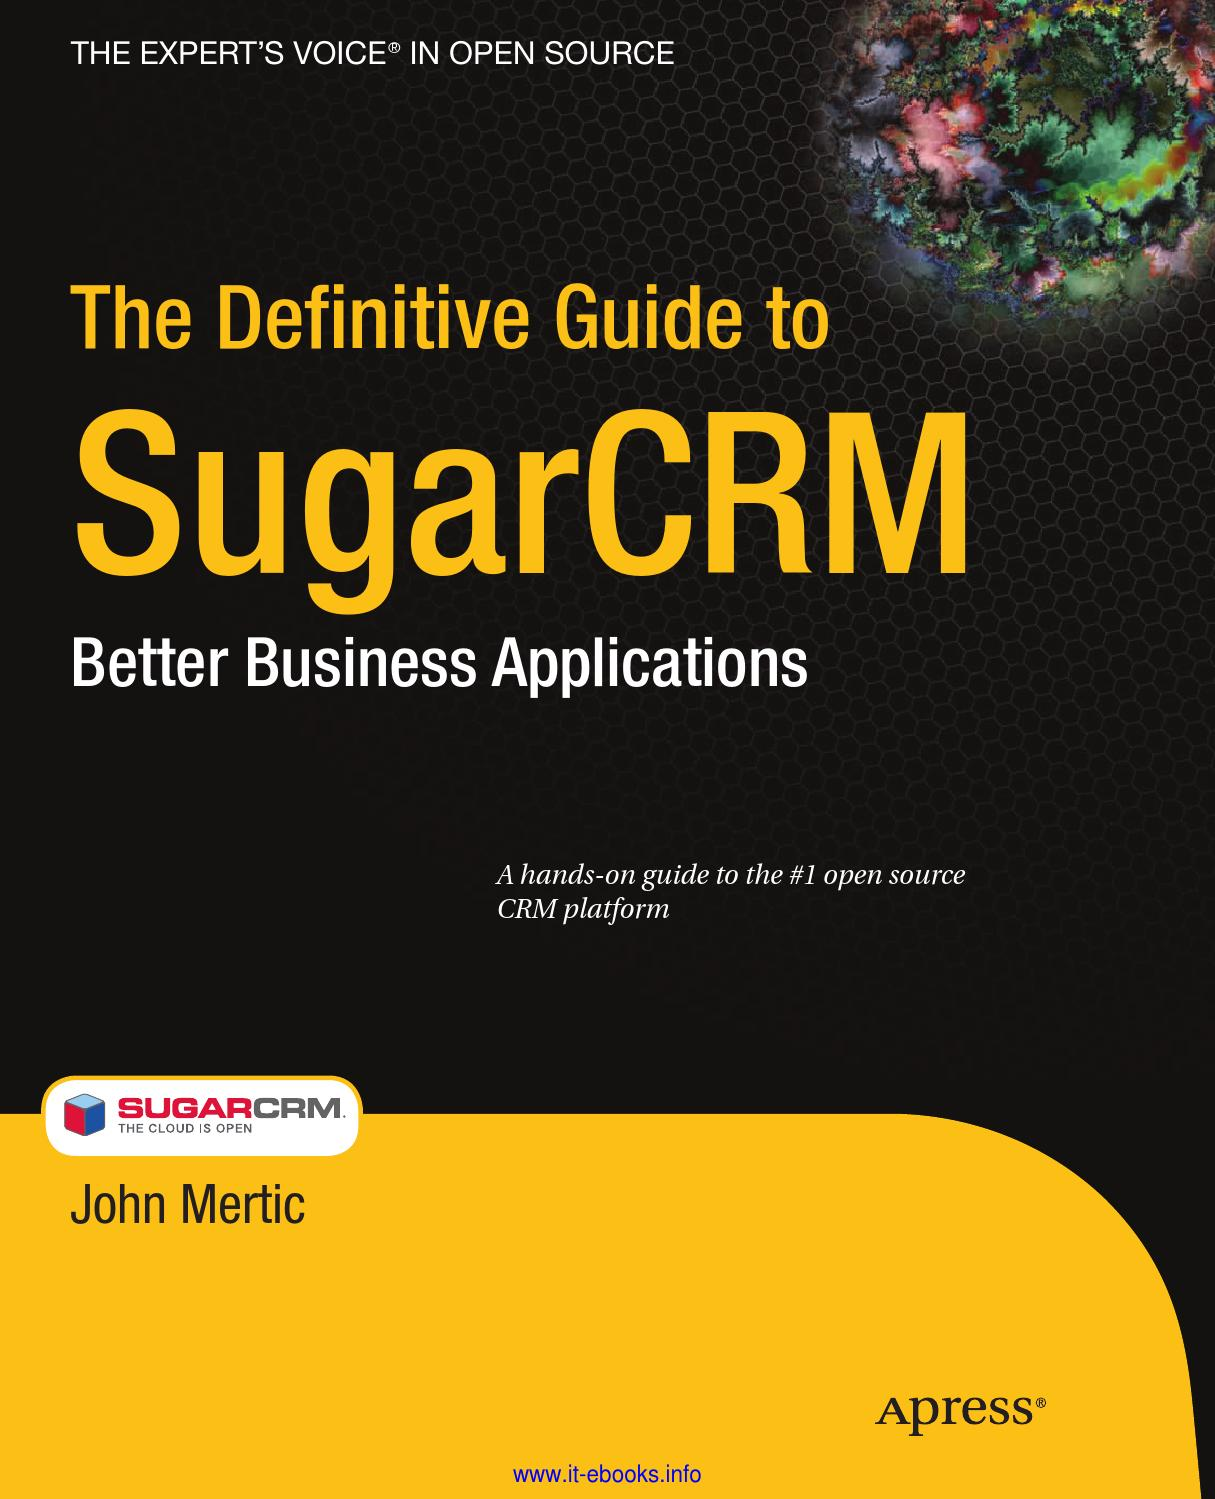 The definitive guide to sugarcrm by martin julia issuu fandeluxe Choice Image